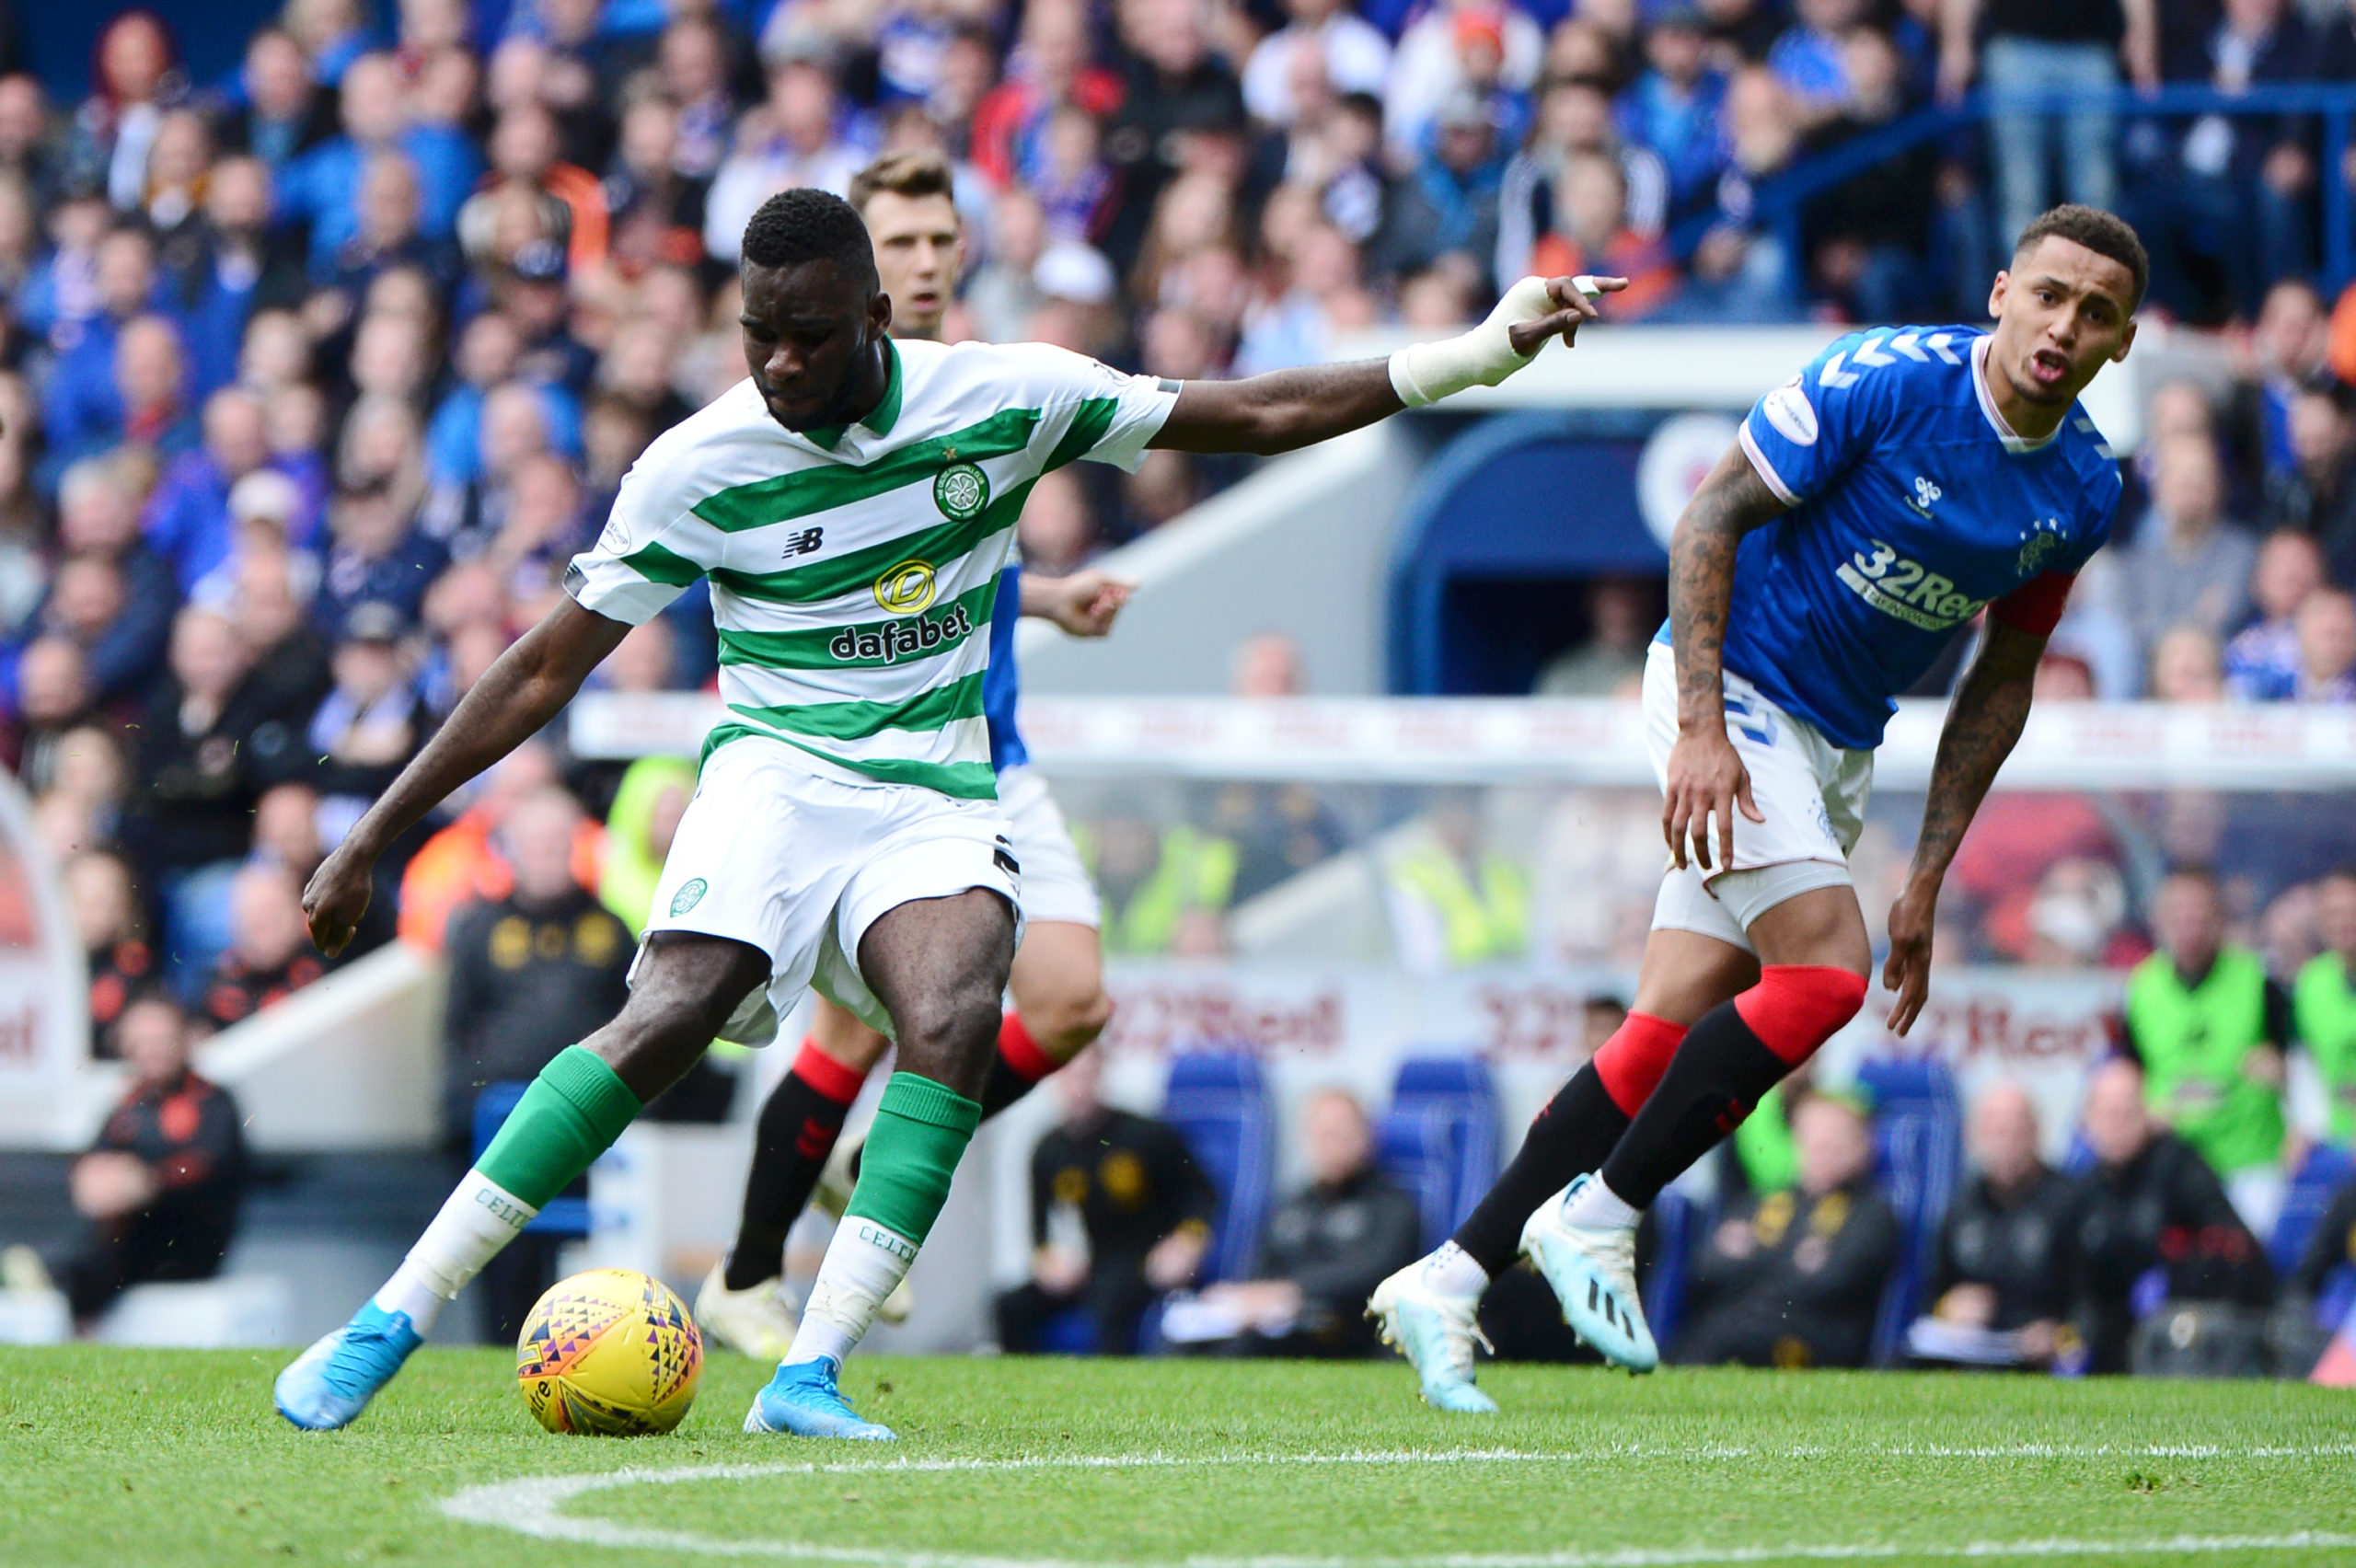 Celtic star Odsonne Edouard needs to produce against Rangers in the Scottish Cup